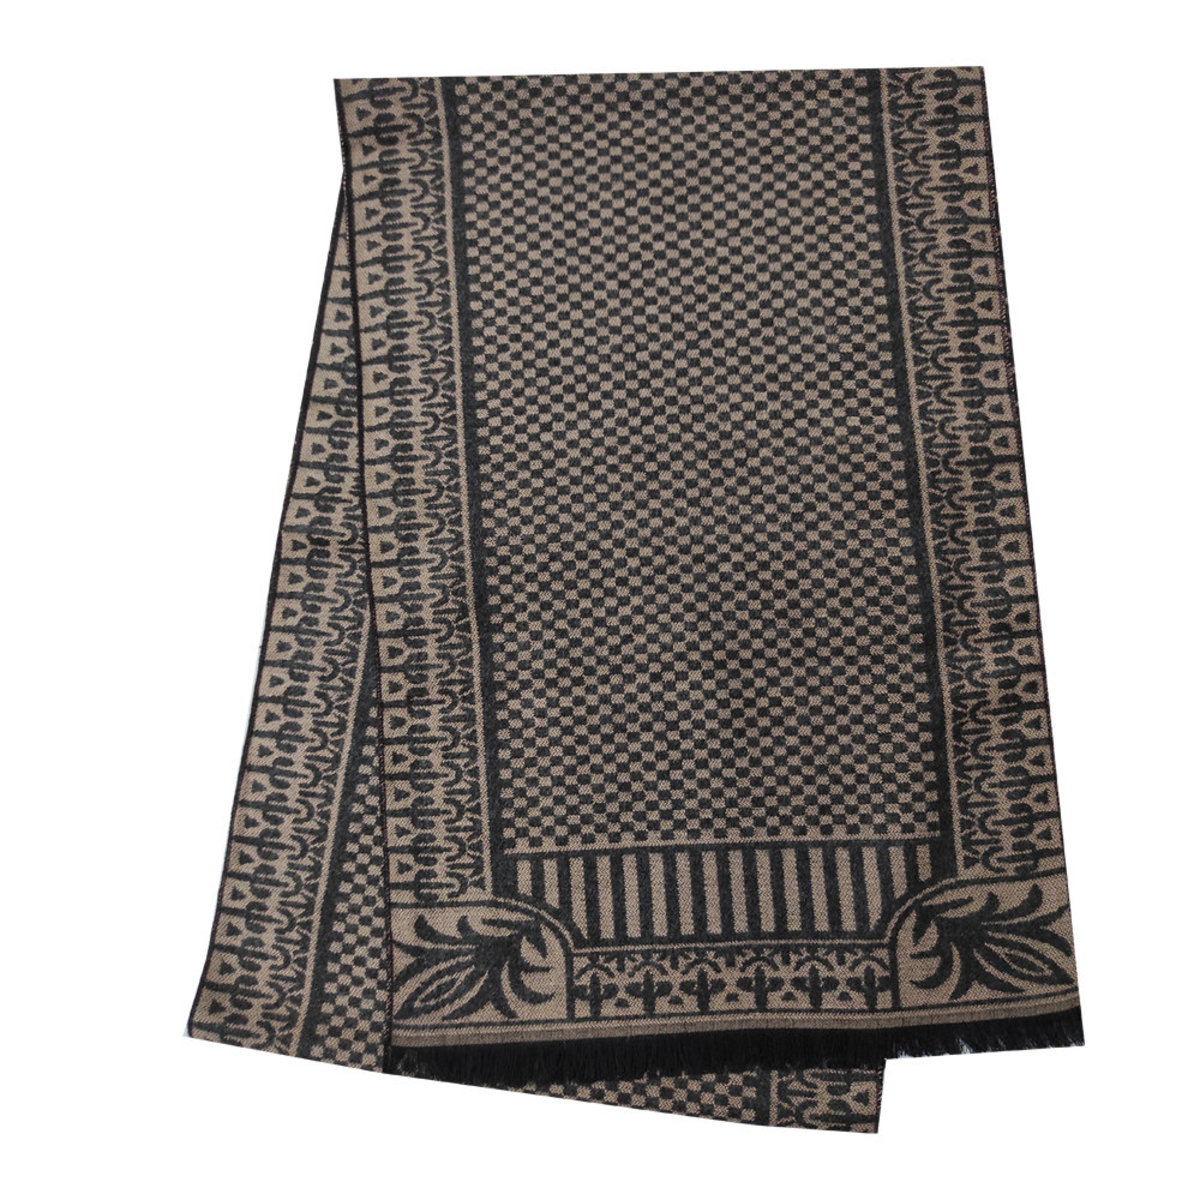 Men's autumn and winter warm fashion style fringed scarf  (BR30)